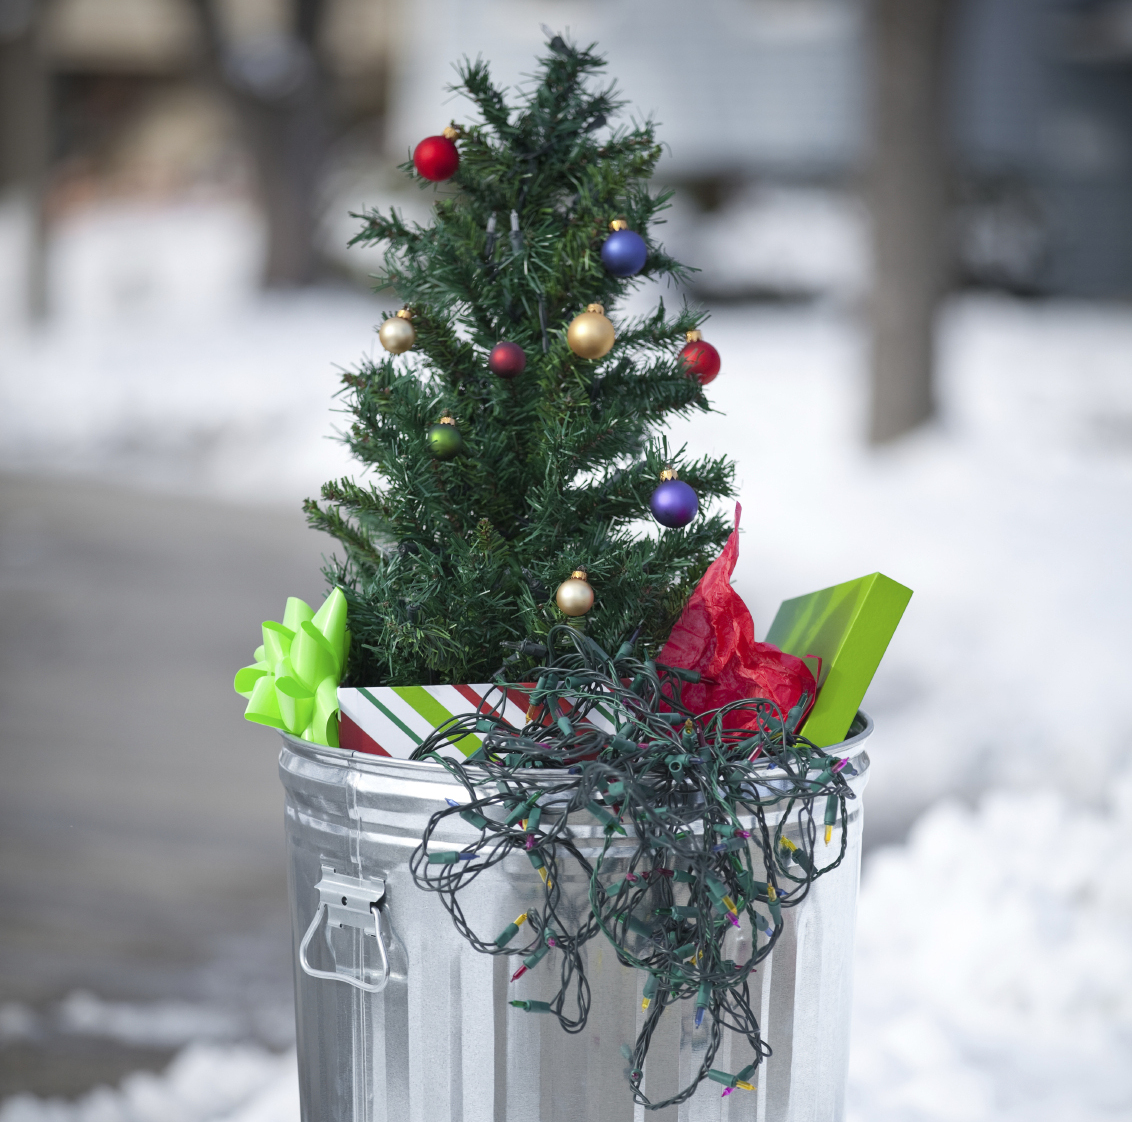 Chistmas Trees: Got Compost